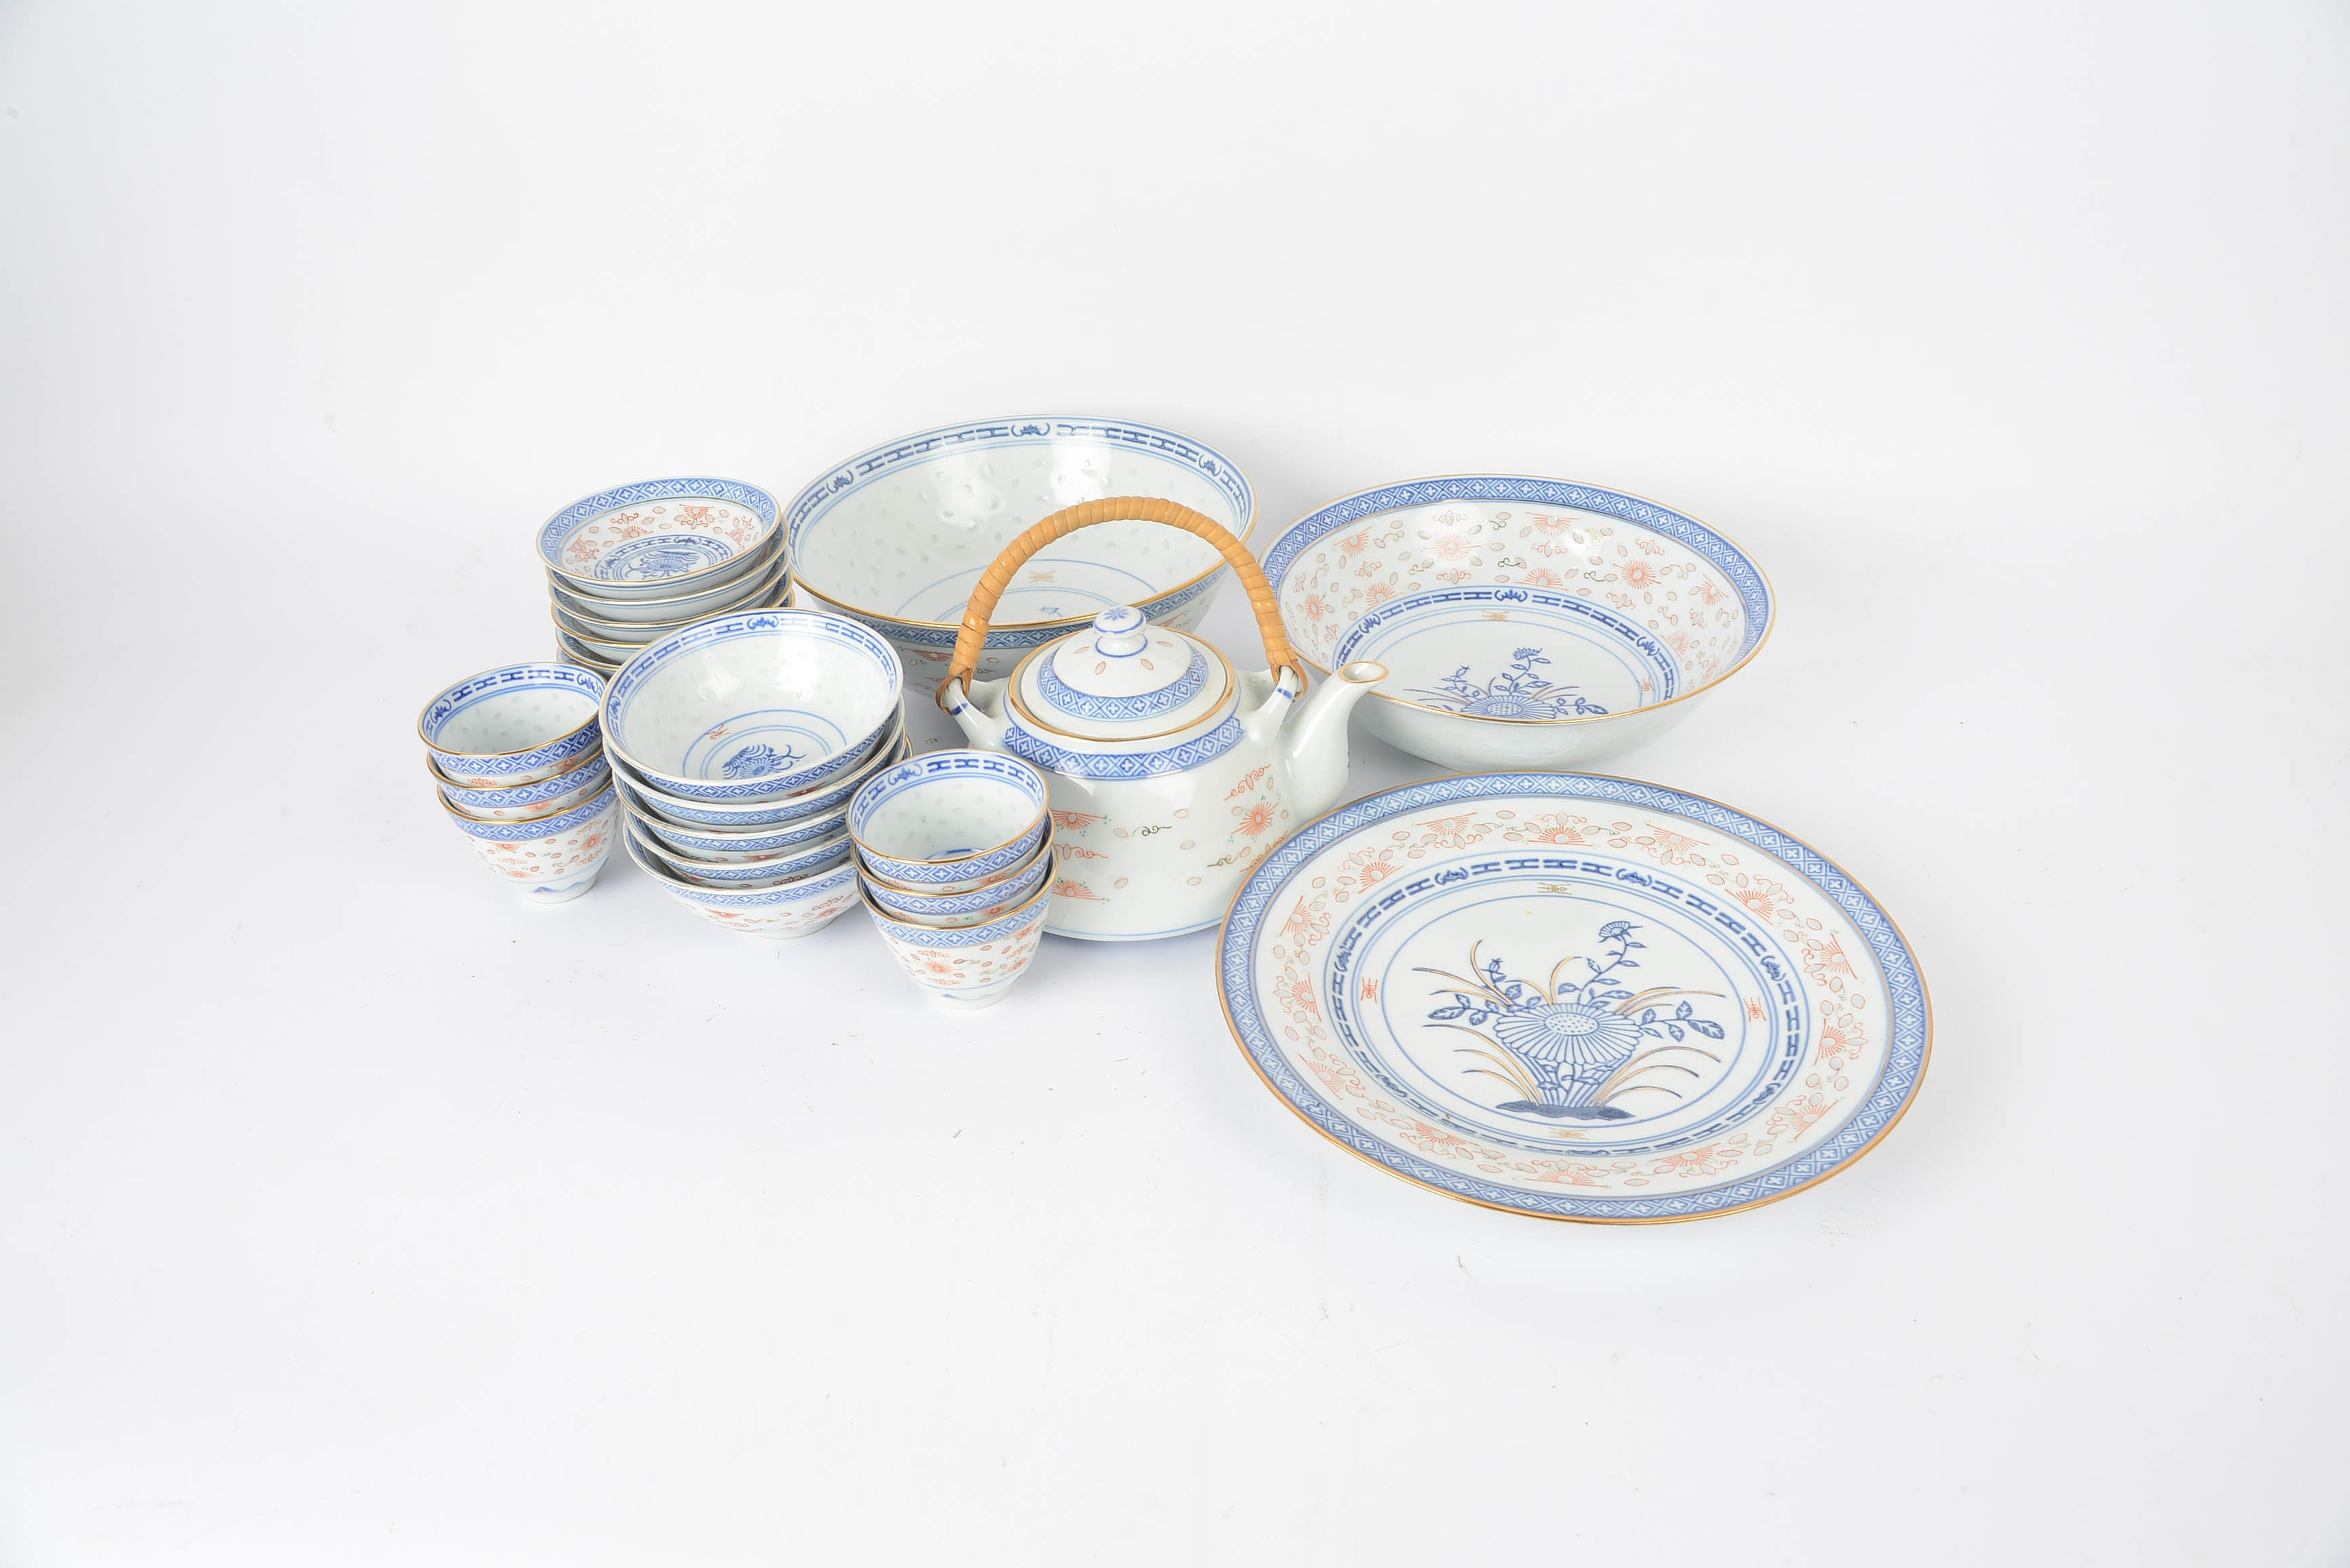 Grouping of Chinese Ceramic Dishes